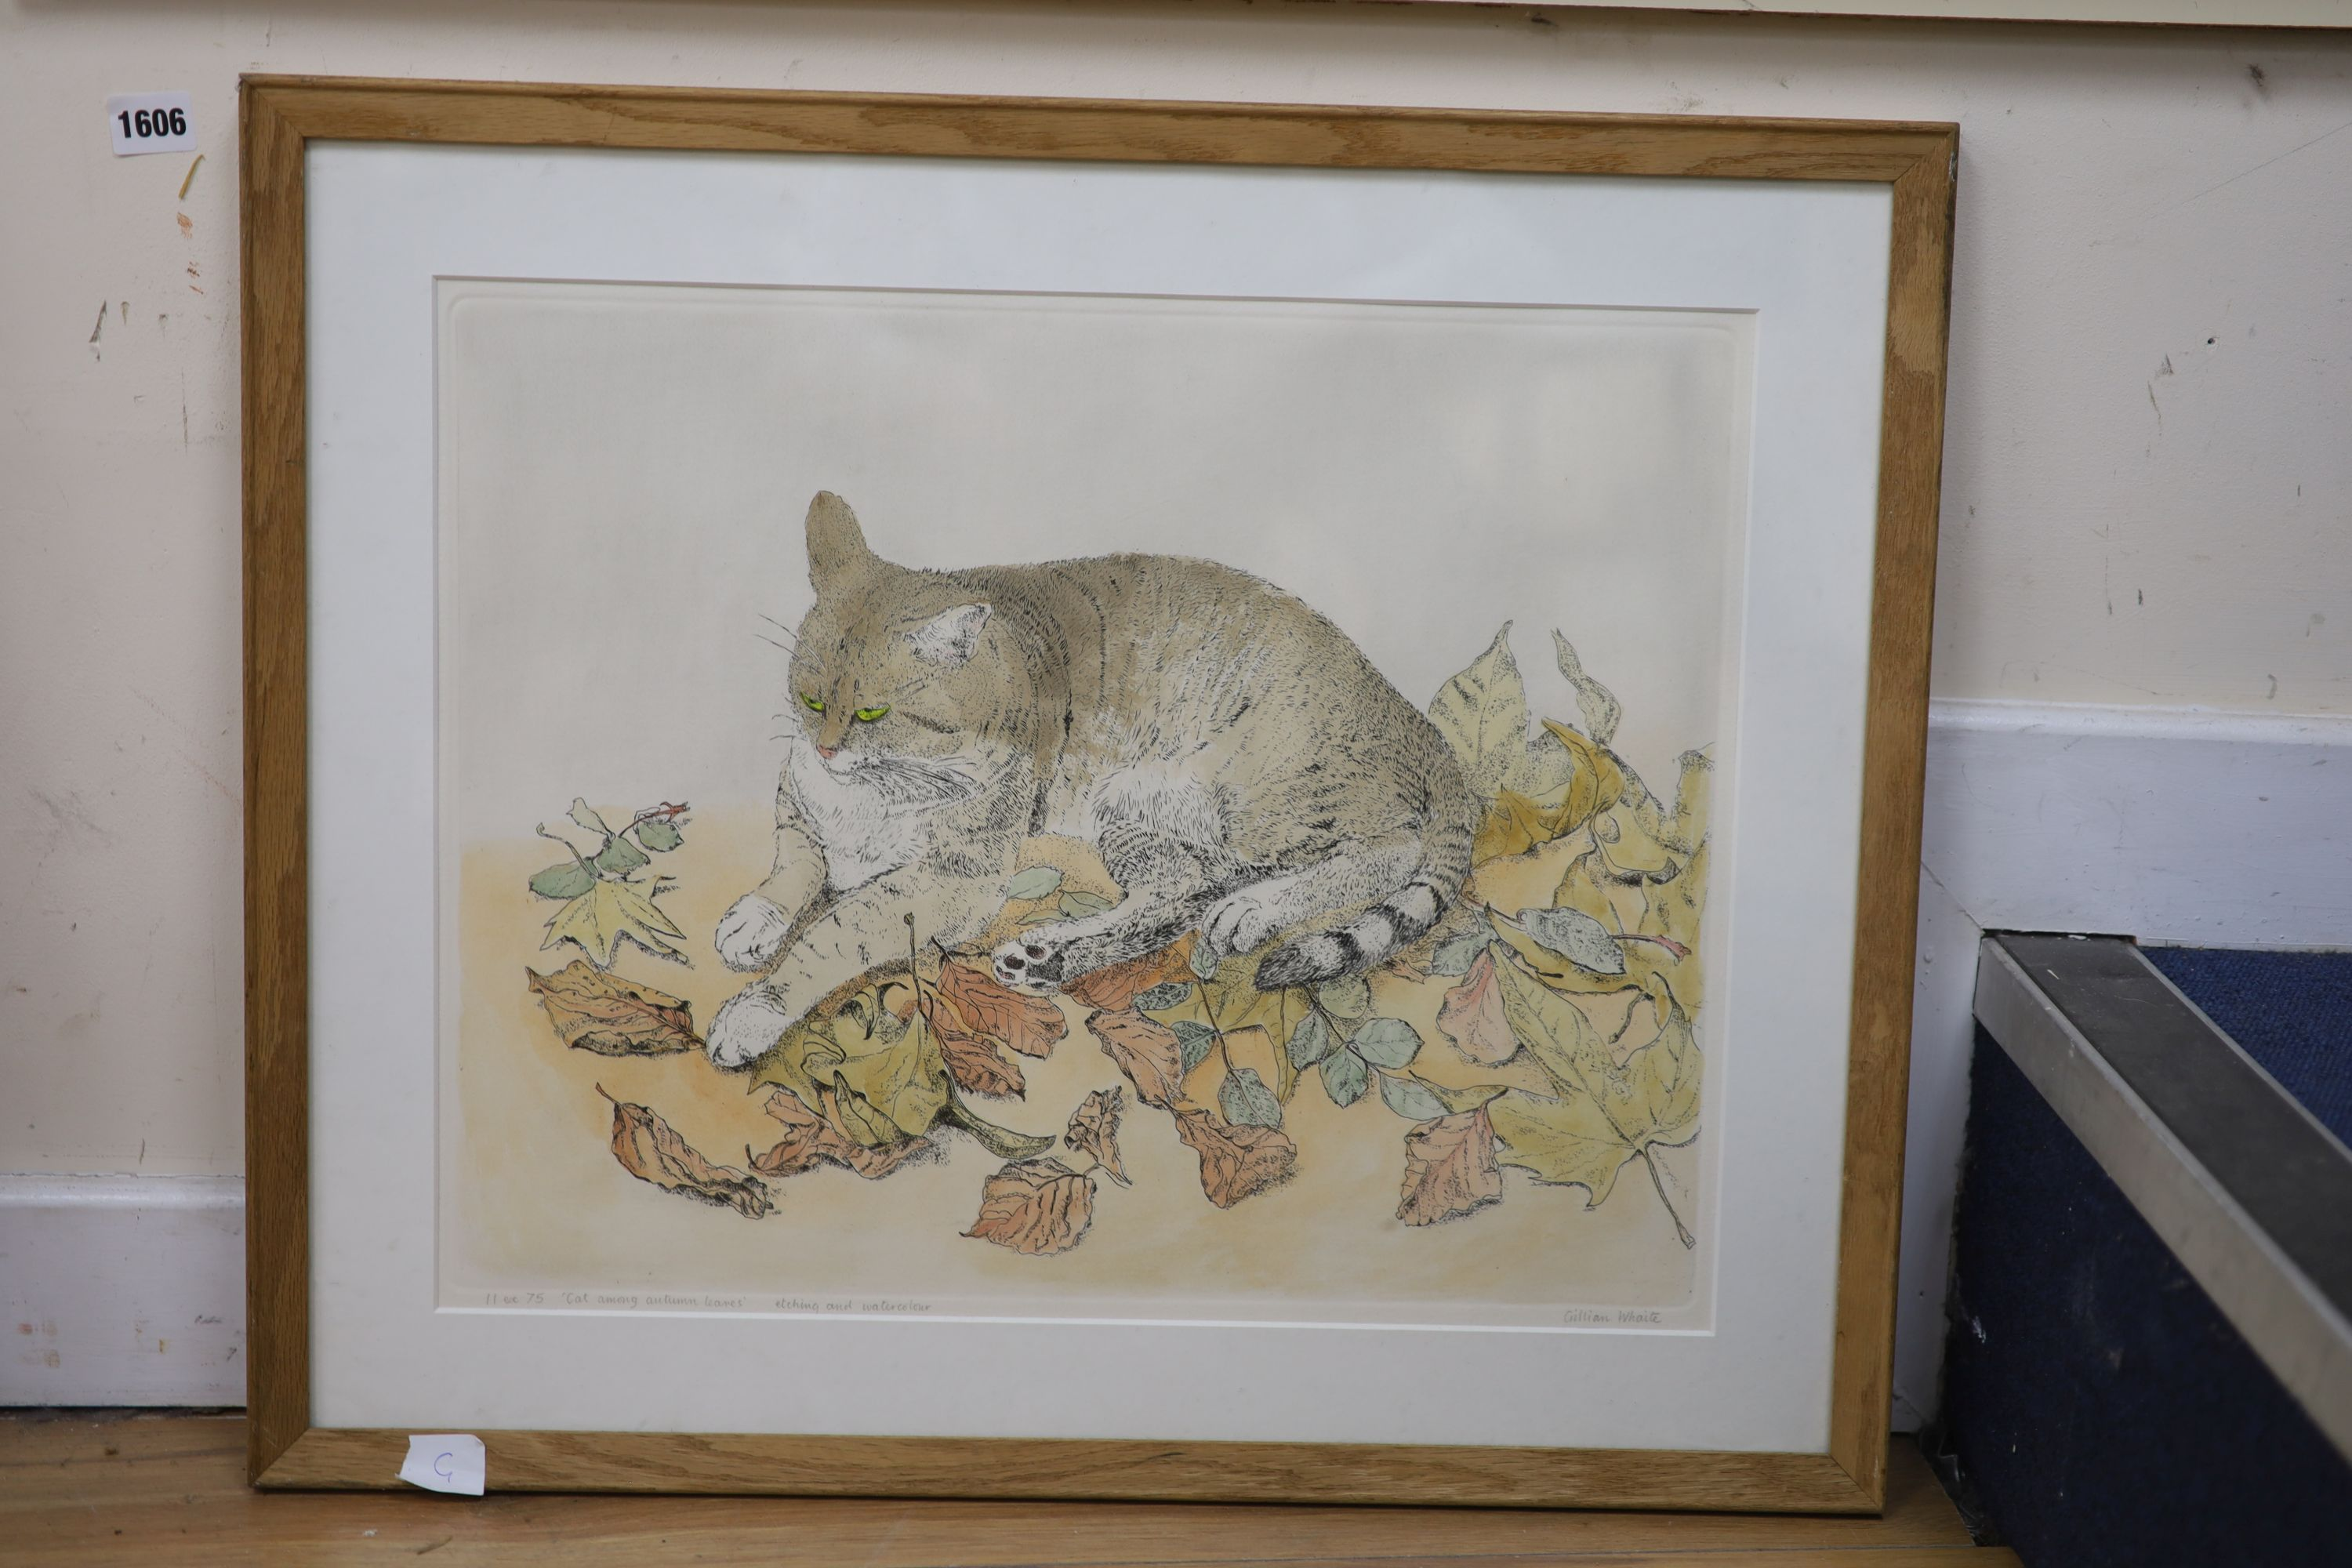 Gillian Whaite (1934-), etching and watercolour, Cat among autumn leaves, signed, 11/75, 40 x 50cm - Image 2 of 2